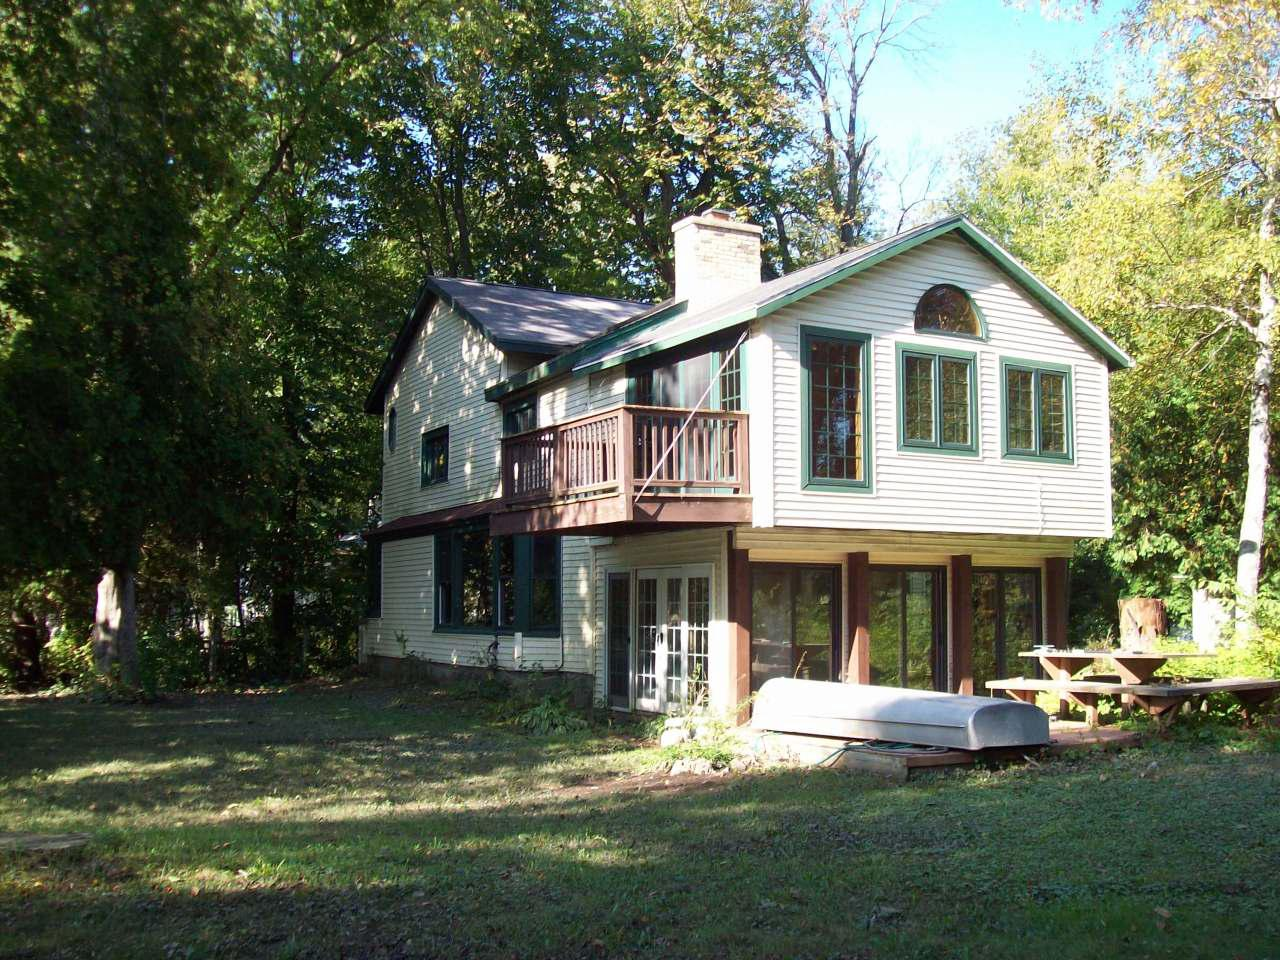 This private retreat offers tons of potential. Bring your tool box and remodeling enthusiasm to this beautiful river setting on navigable part of the Milwaukee River. Many activity options includes: boating, water skiing, swimming, fishing, ice skating, cross country skiing or just relax and take in the quiet beauty of the river. Other features this well-situated piece of property include are a three car garage, boat house and multiple storage sheds. With some imagination and effort this could be your dream home come true. Property is being sold by power of attorney. No property condition report will be provided.